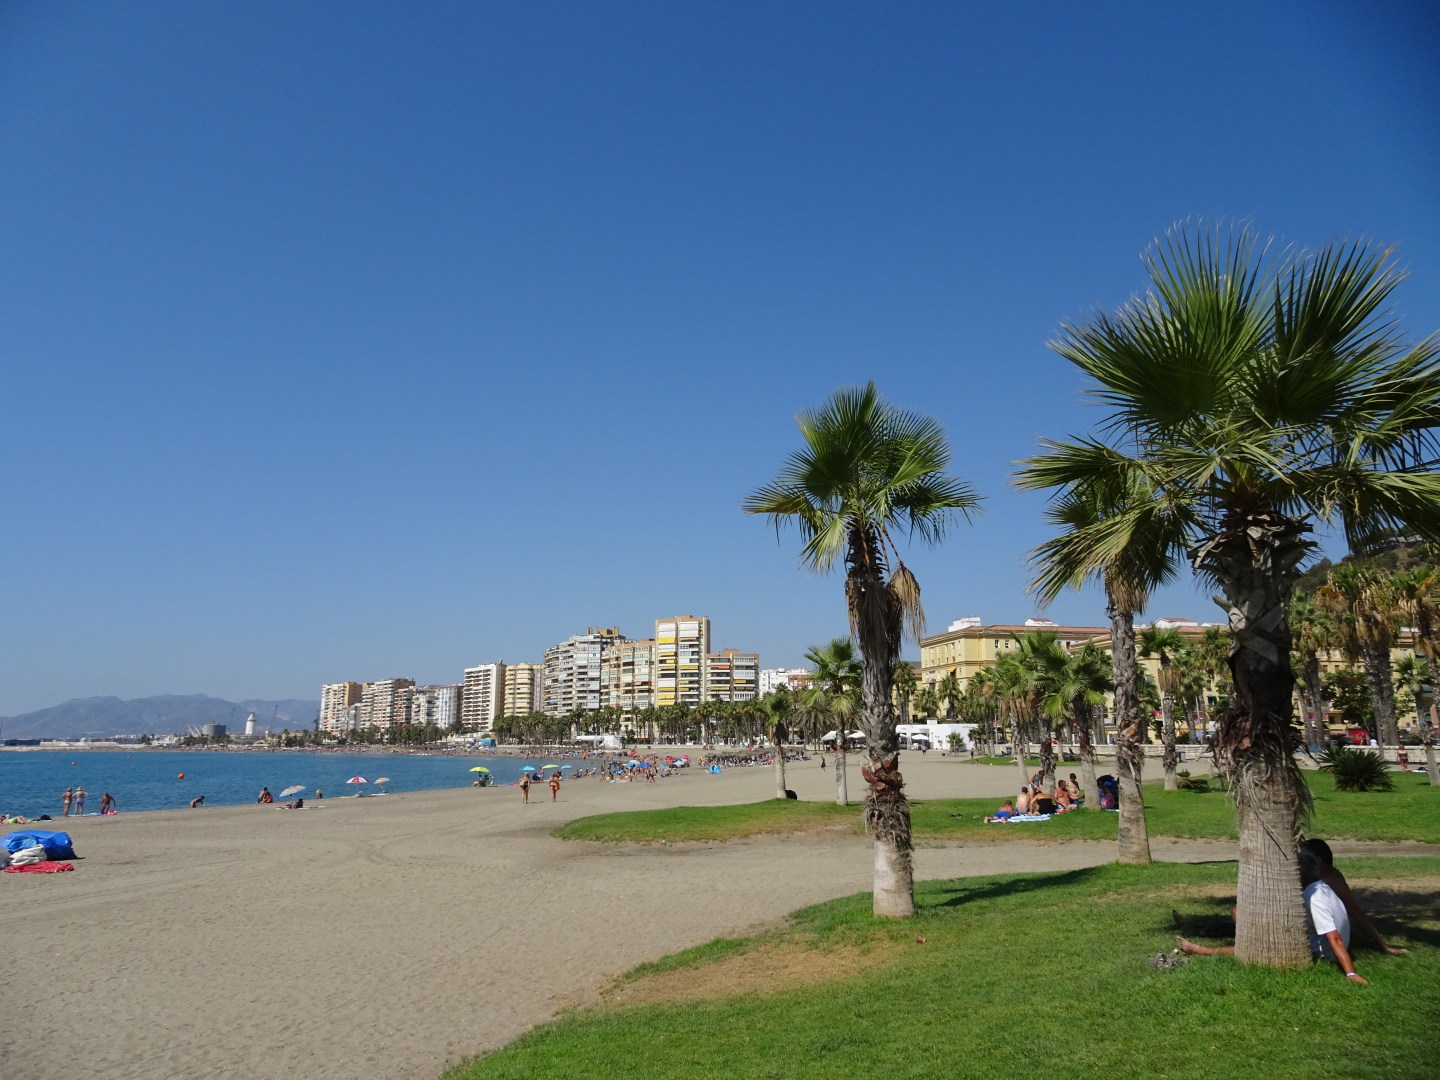 Malagueta beach in malaga, Spain